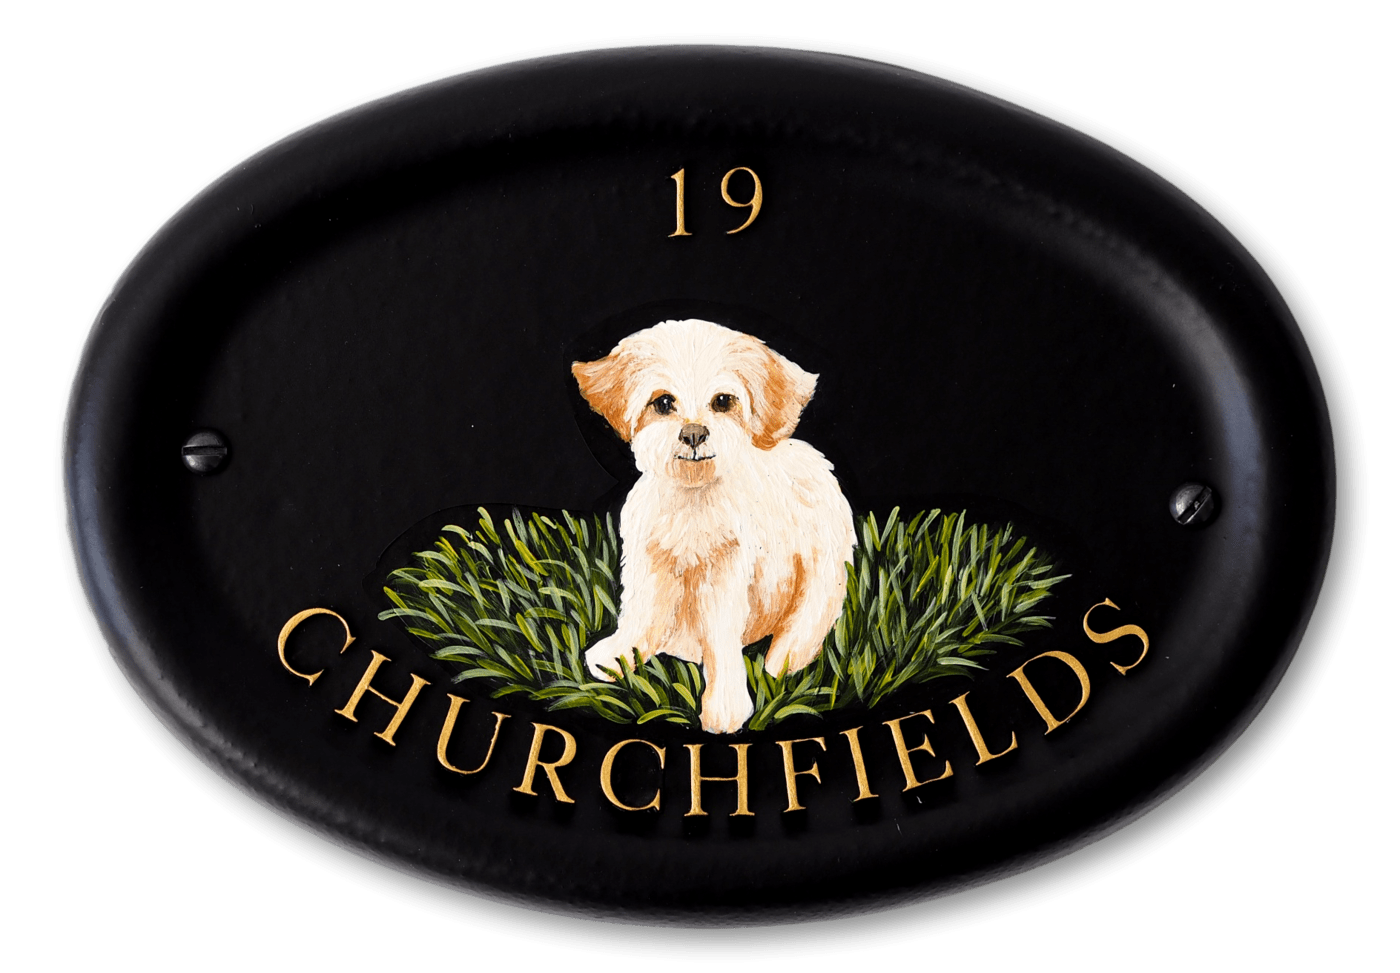 Bichon Frise Flat Painted house sign